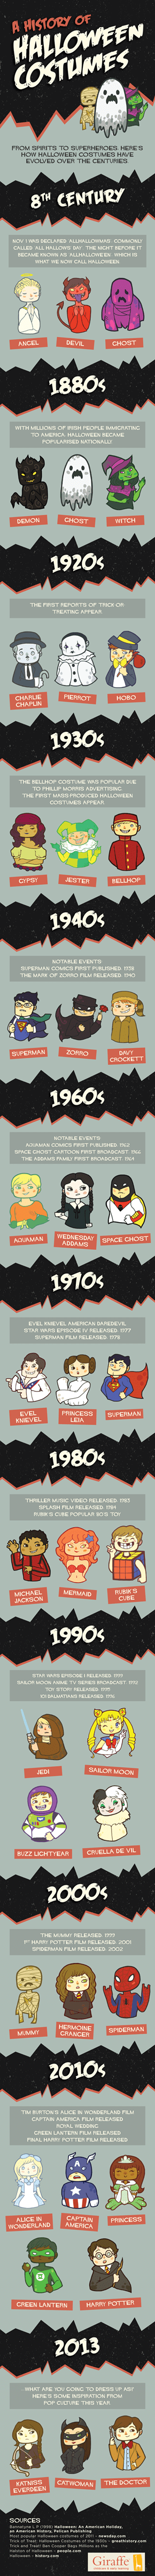 A History of Halloween Costumes